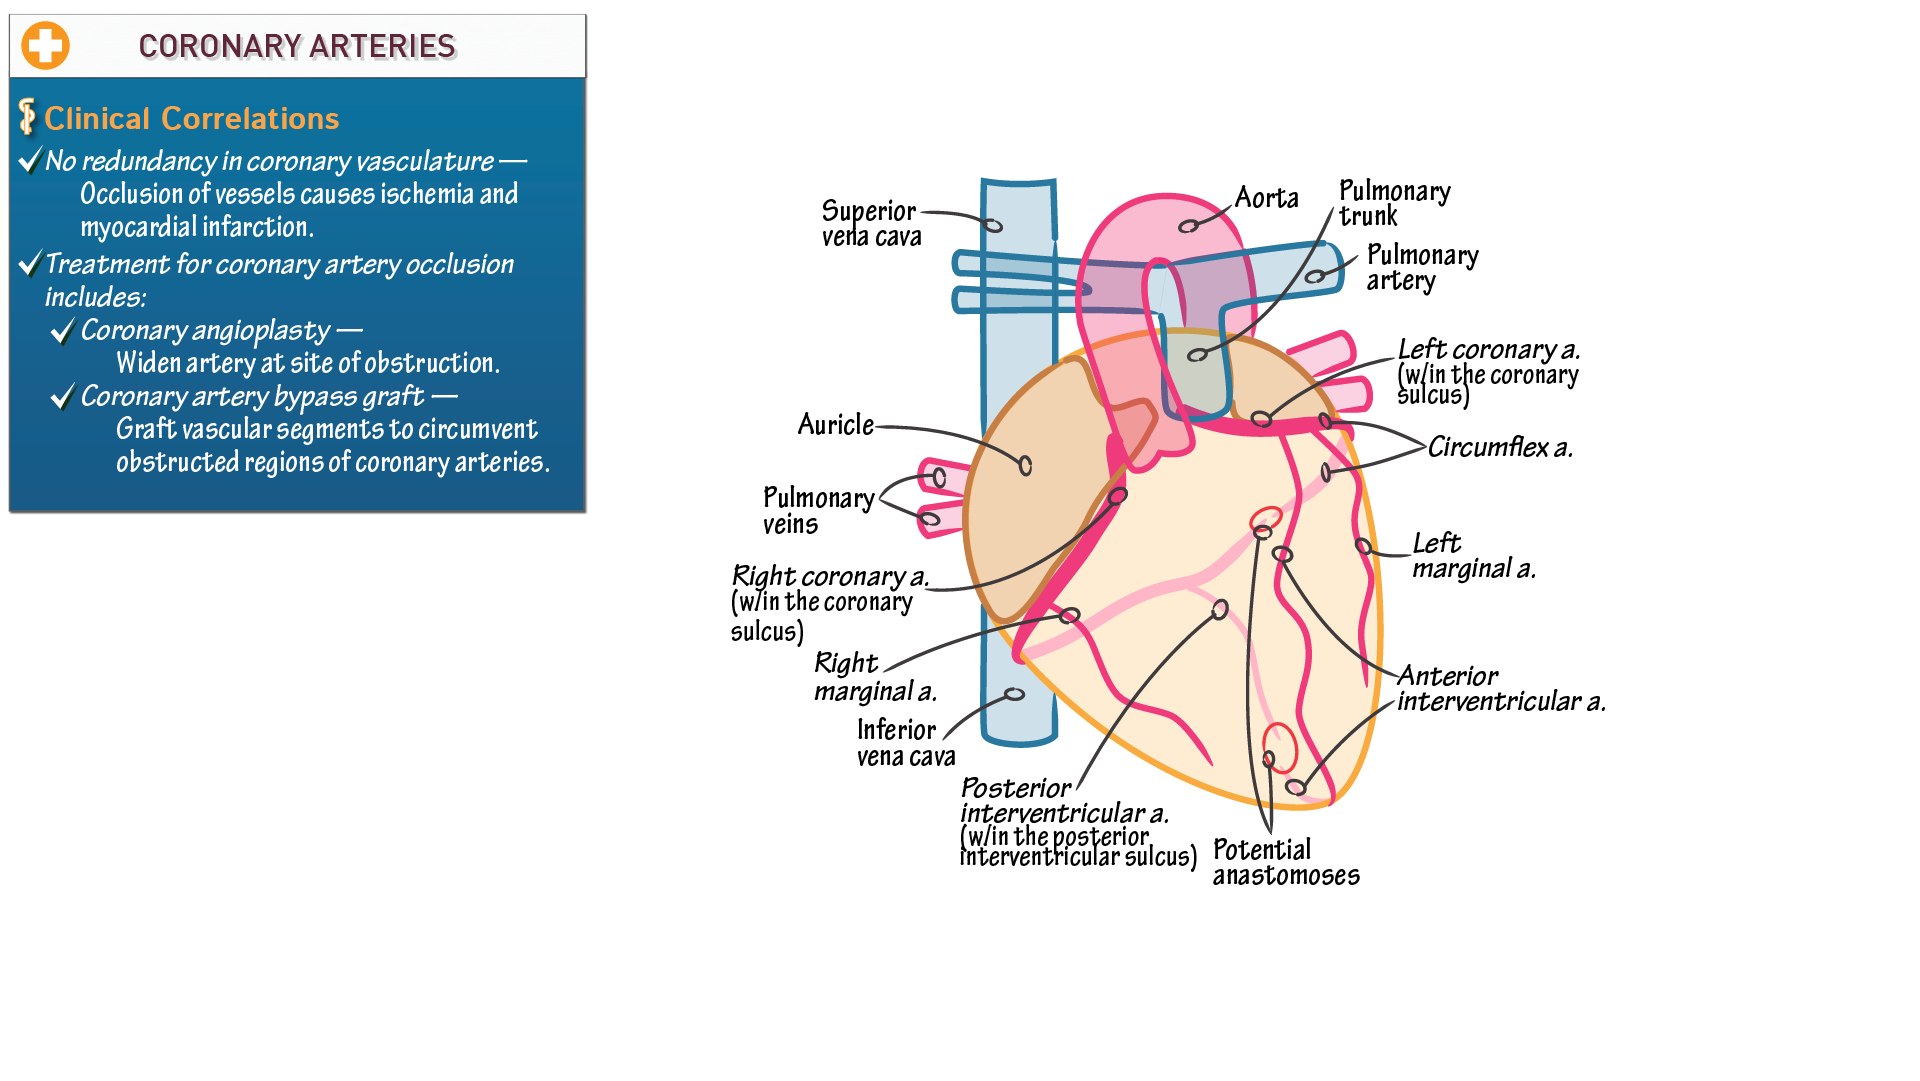 Anatomy & Physiology: Coronary arteries | Draw It to Know It